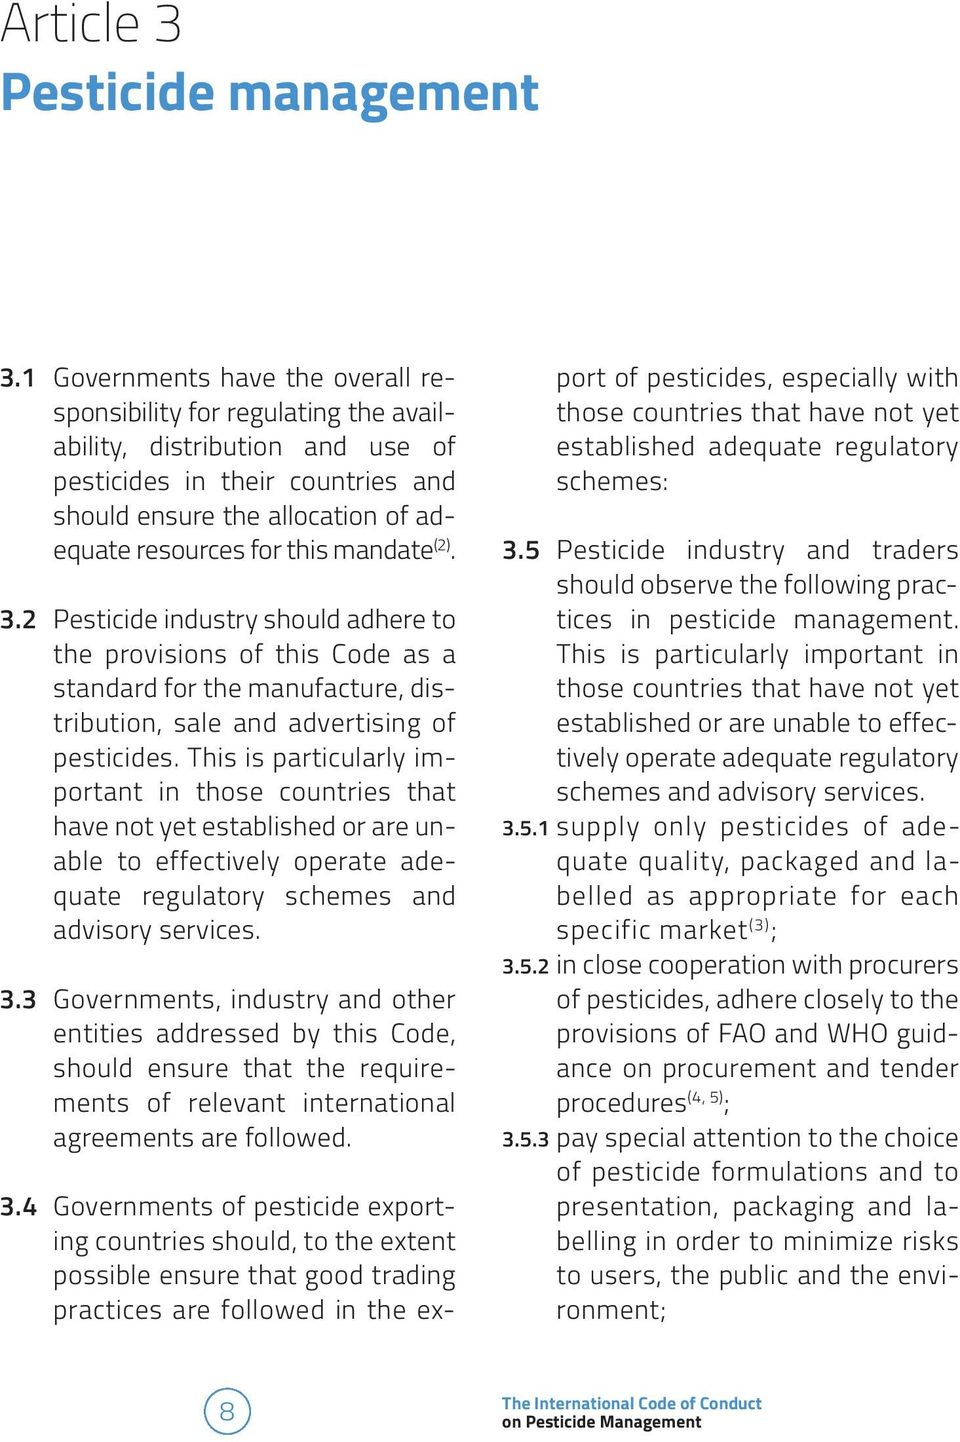 mandate (2). 3.2 Pesticide industry should adhere to the provisions of this Code as a standard for the manufacture, distribution, sale and advertising of pesticides.